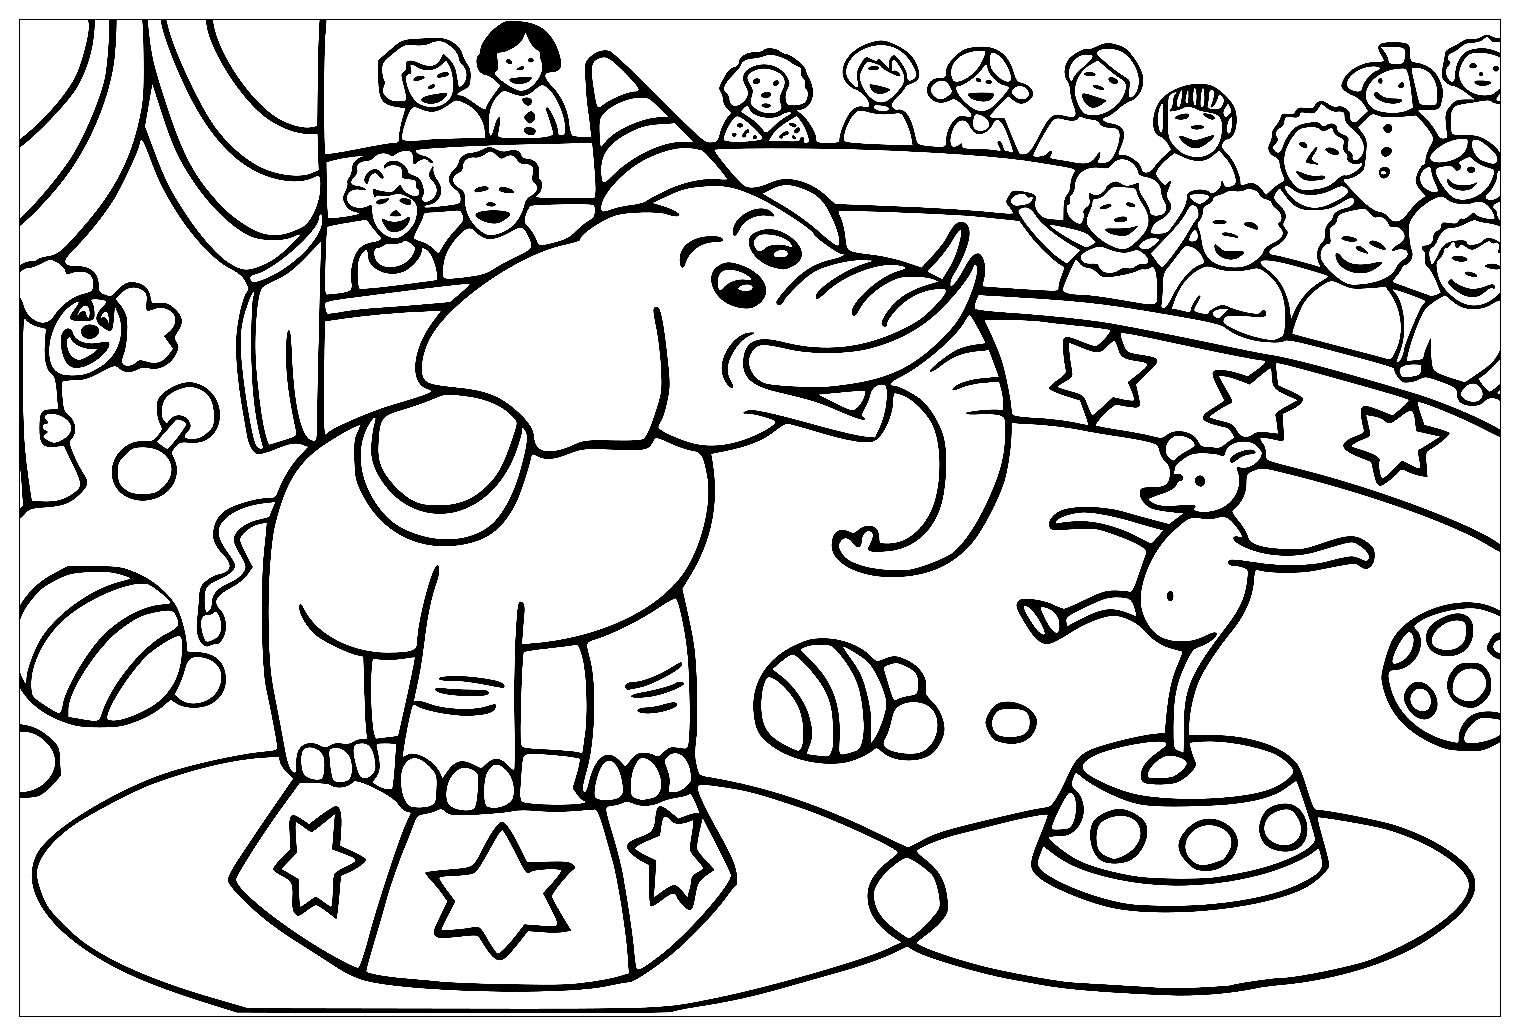 circus coloring pages for preschool 10 best for simple circus tent drawing creative things for coloring pages preschool circus